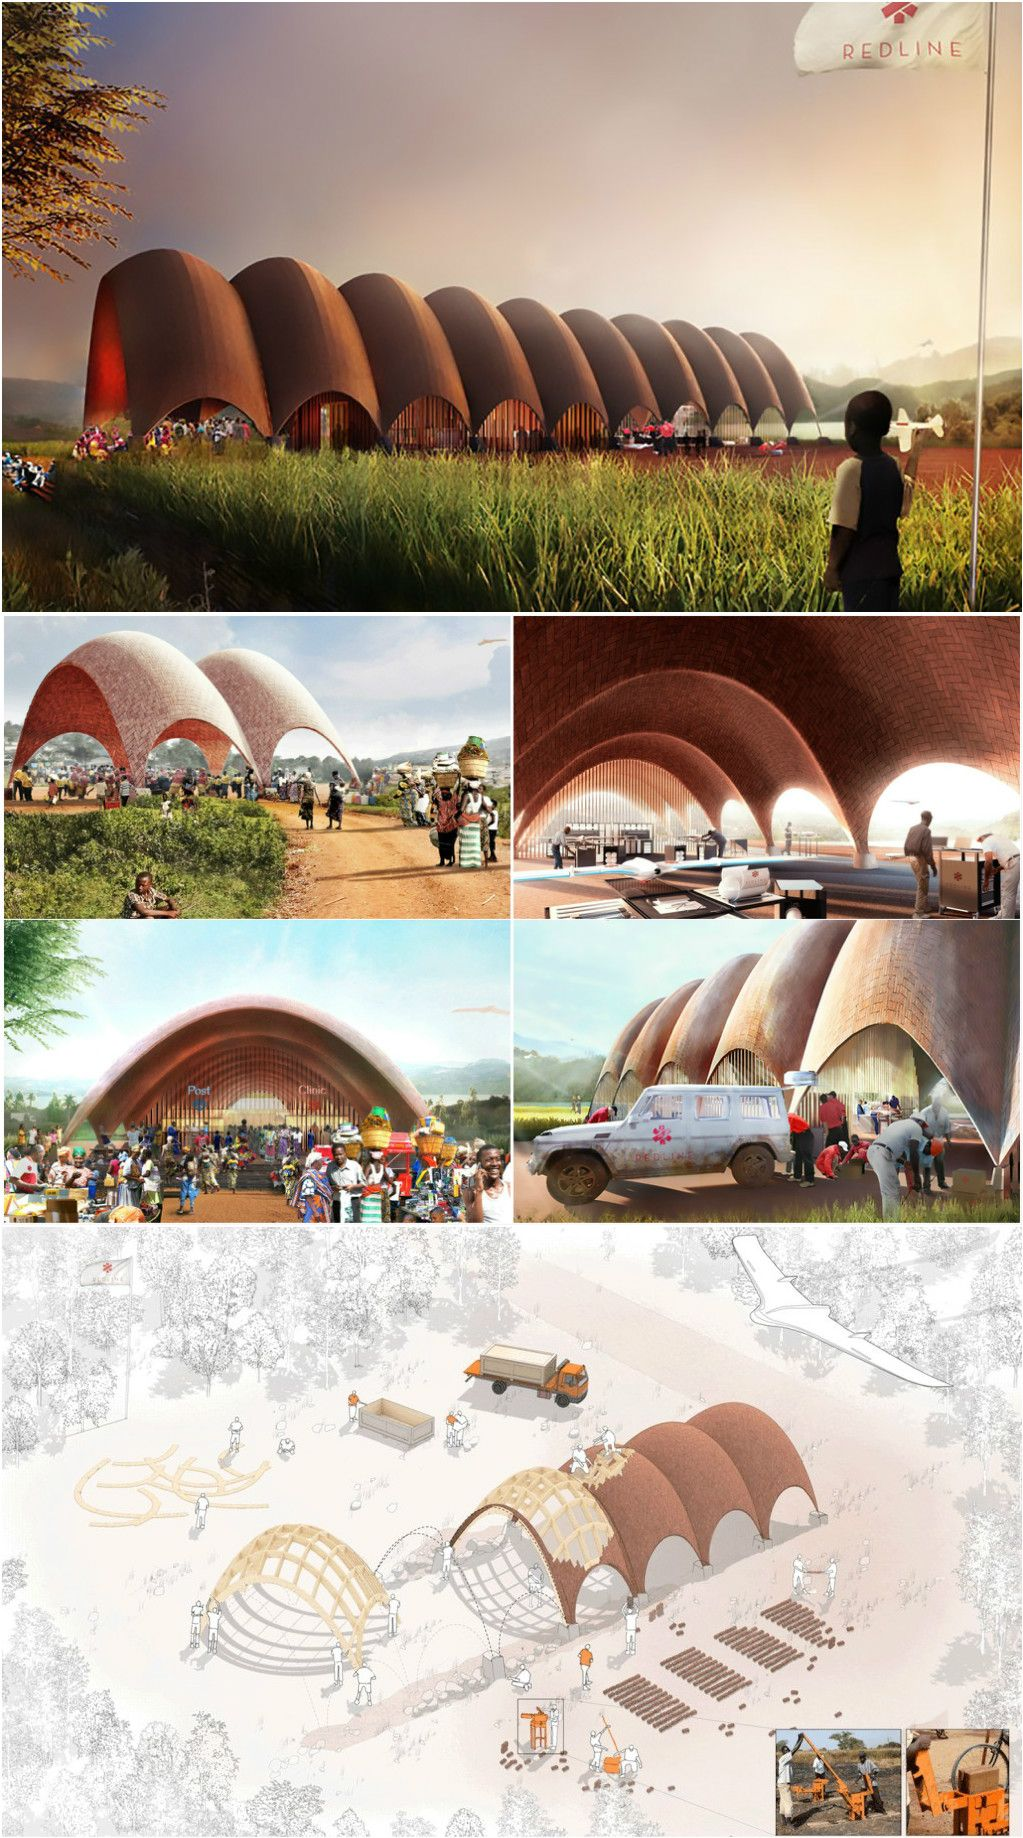 Foster + Partners' Droneport will launch aerial vehicles